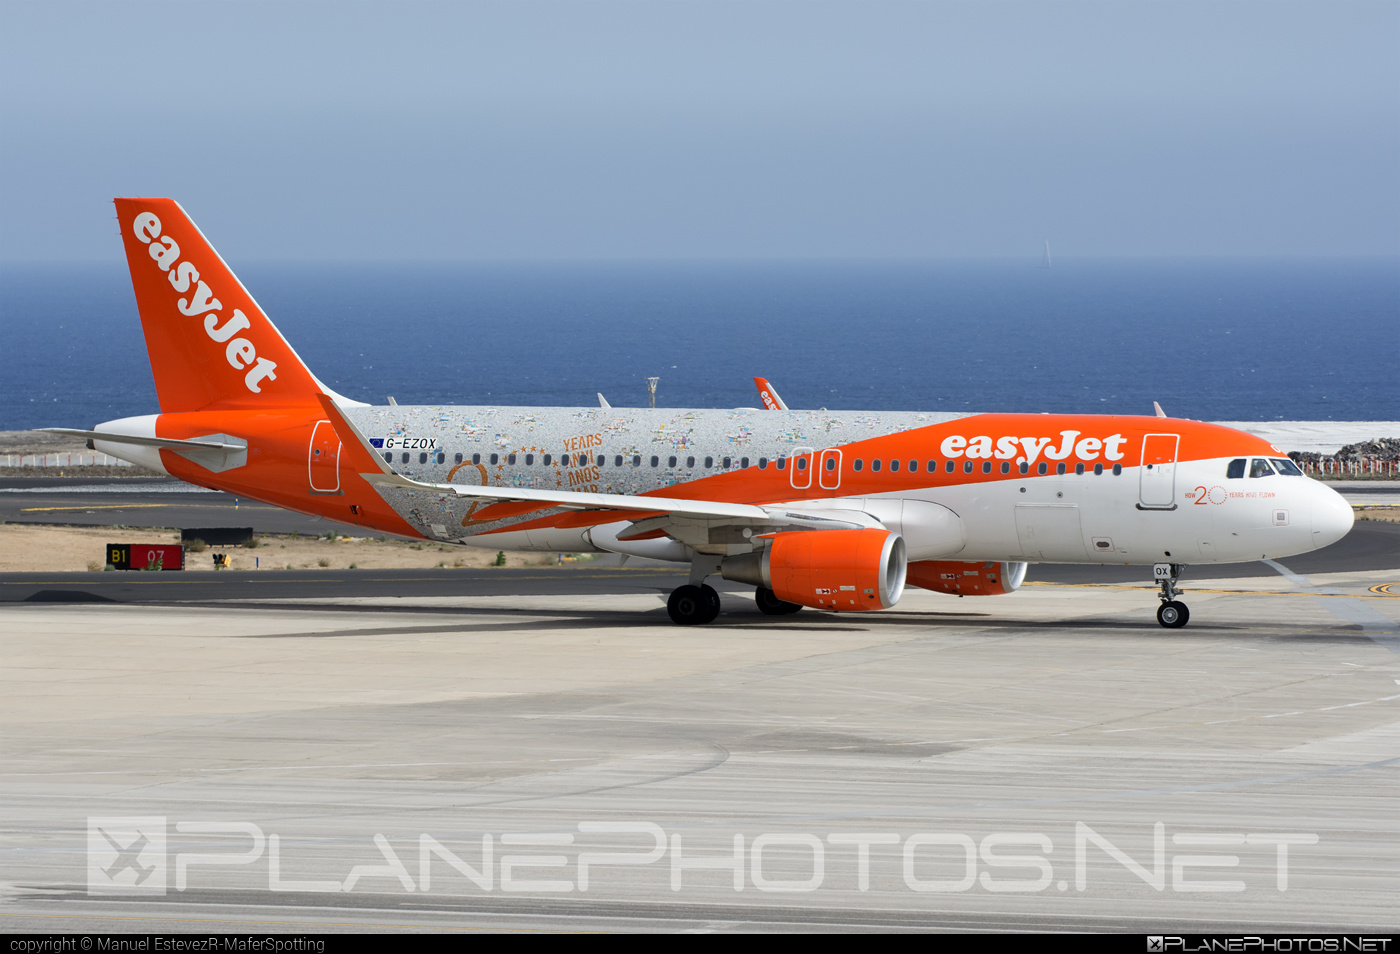 Airbus A320-214 - G-EZOX operated by easyJet #a320 #a320family #airbus #airbus320 #easyjet